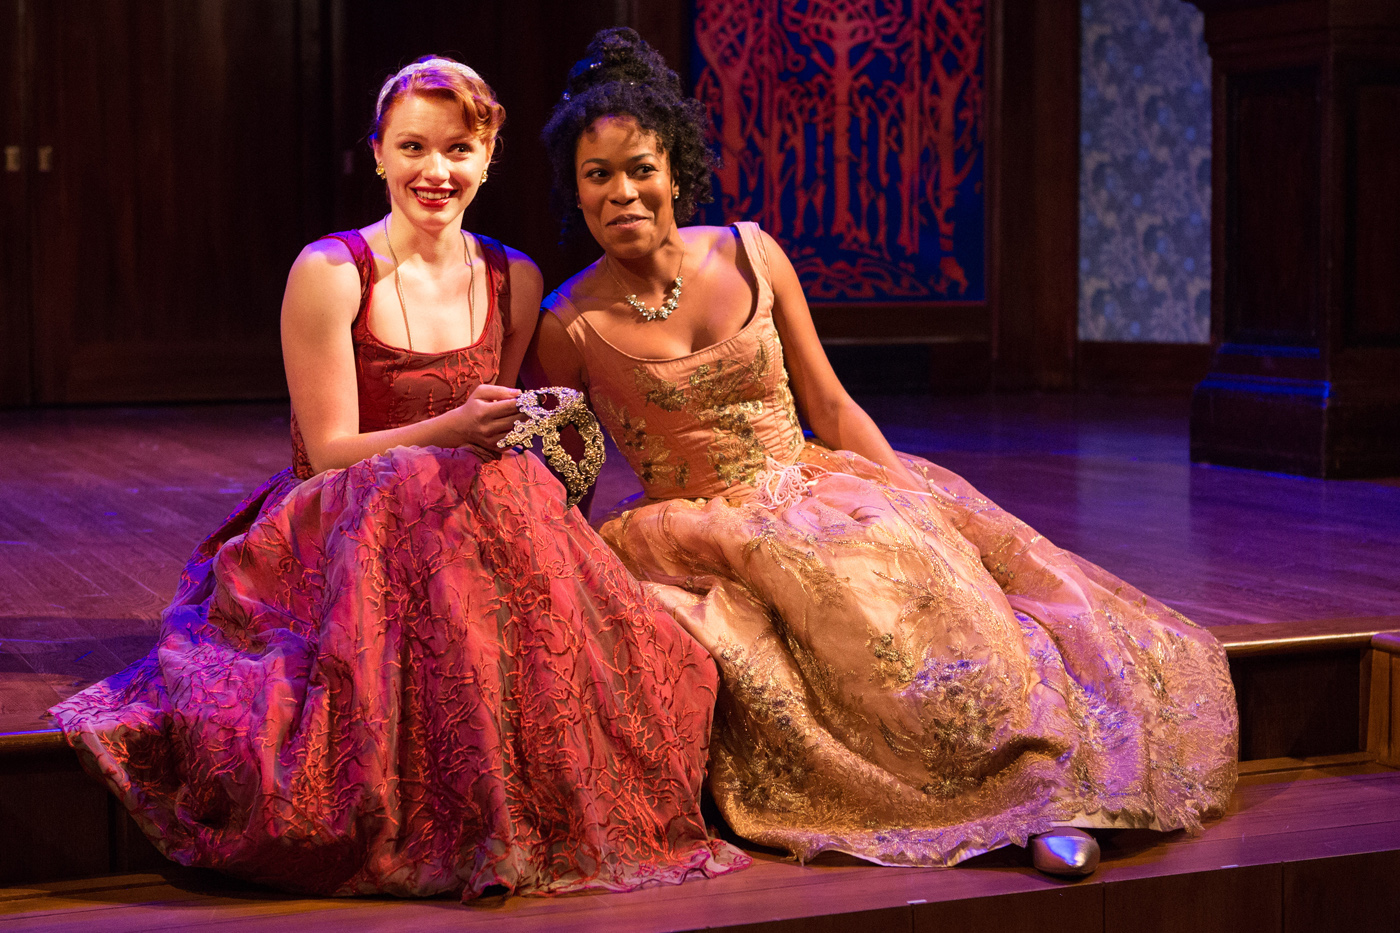 Lindsay Alexandra Carter as Rosalind and Antoinette Robinson as Celia in As You Like It at Folger Theatre, 2017